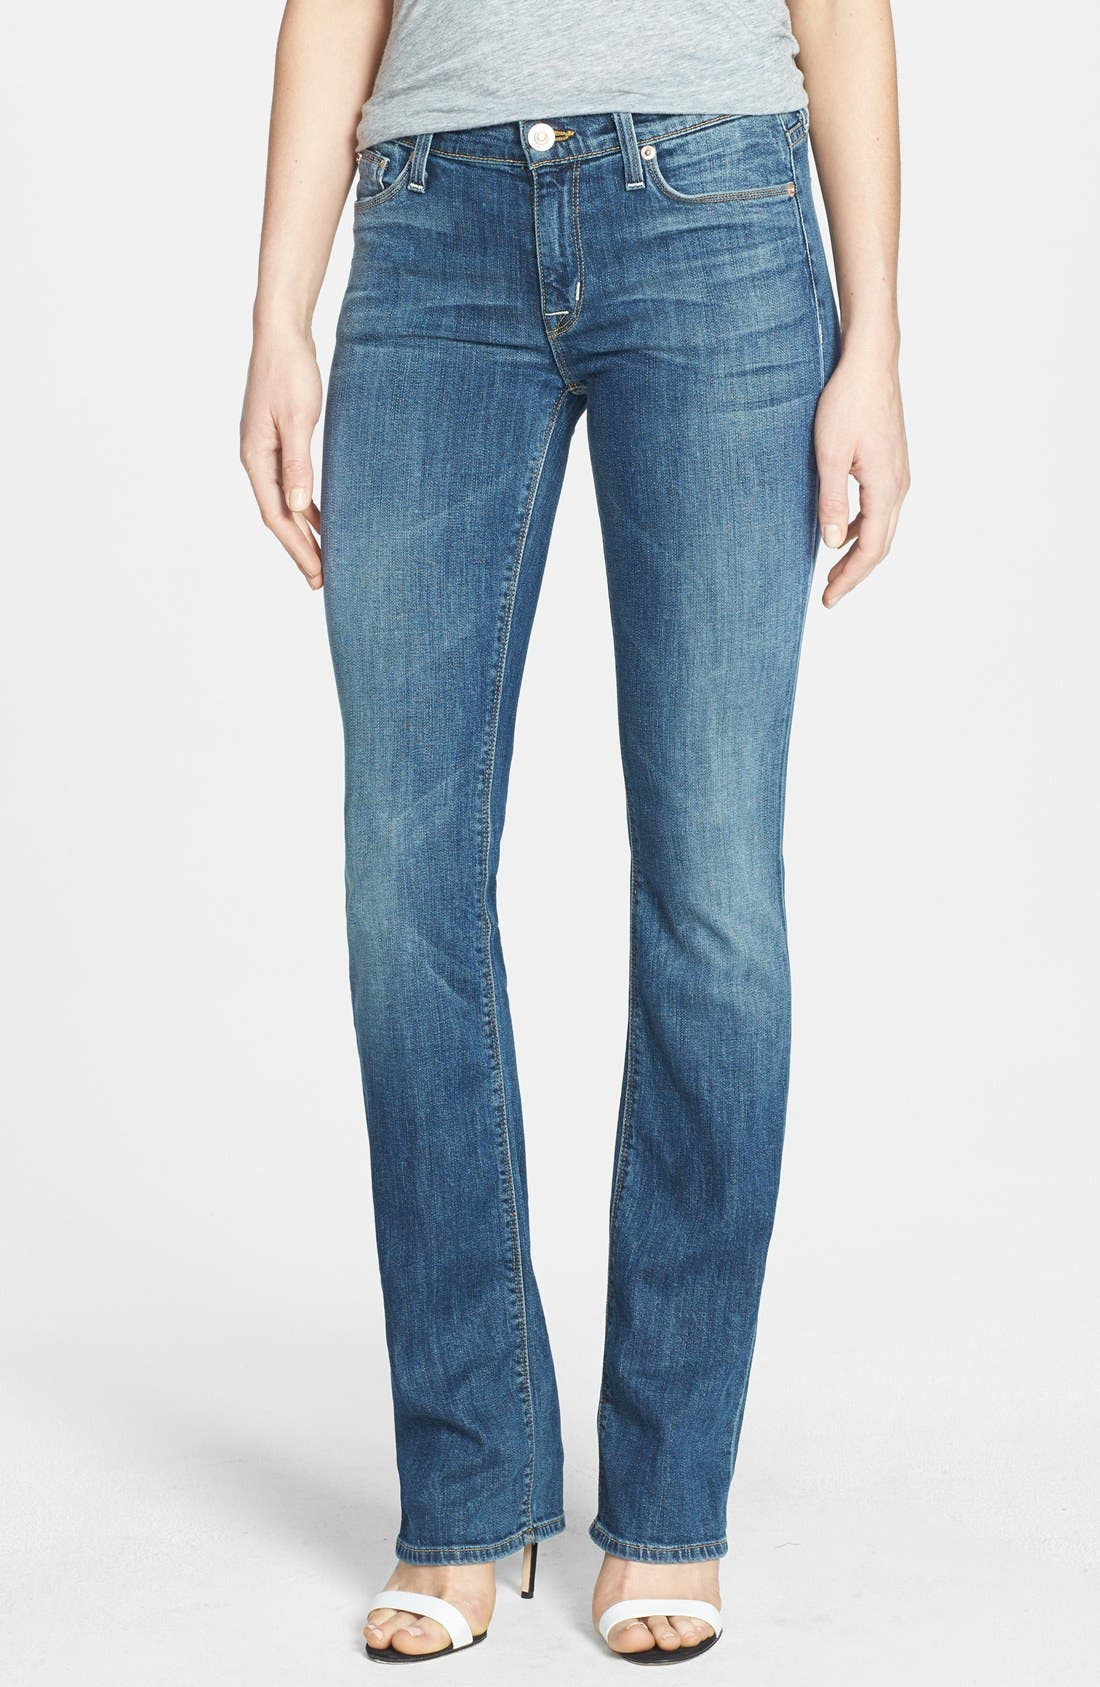 Alternate Image 1 Selected - Hudson Jeans 'Elle' Baby Bootcut Jeans (Hackney)